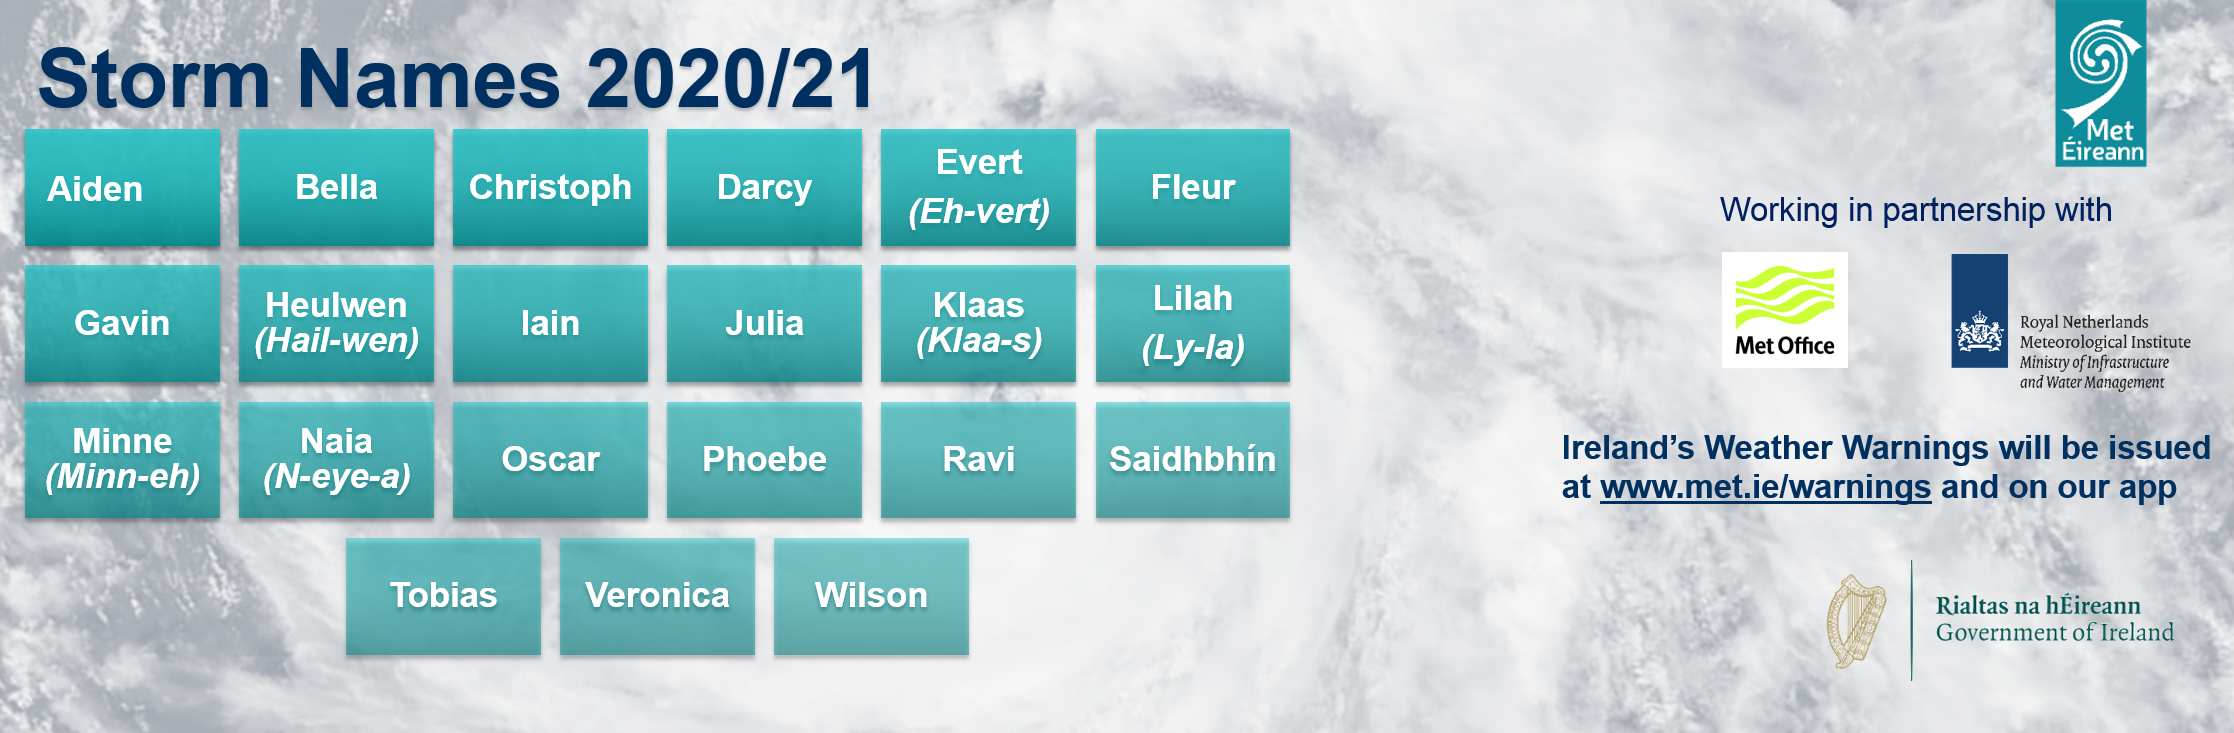 Social media graphic for Storm Names 2020/21 list- follow us on Twitter, Facebook and Instagram